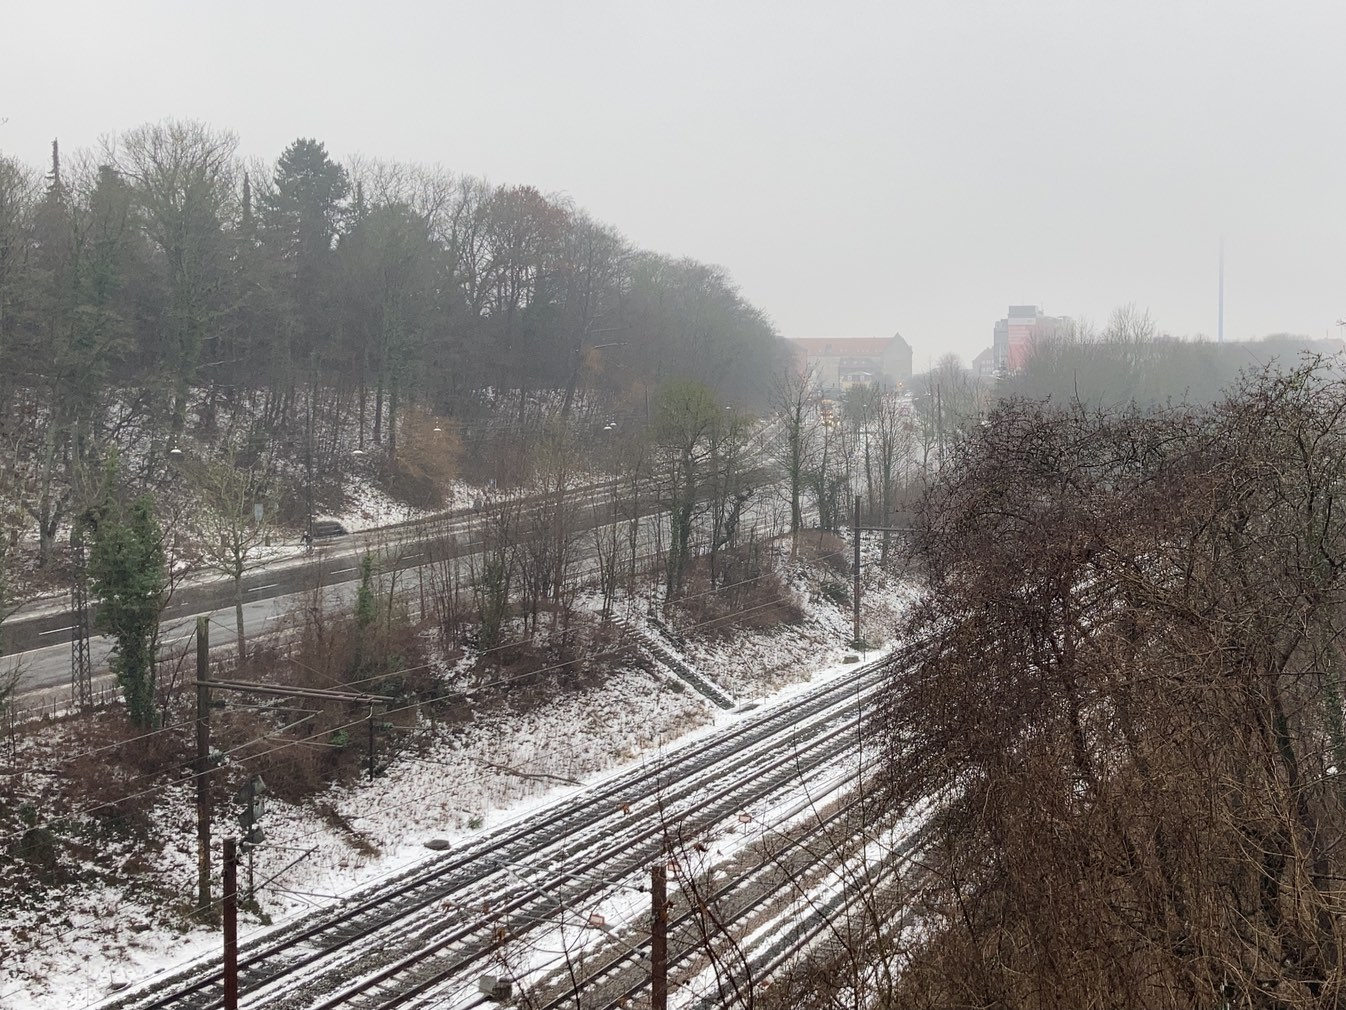 View from the bridge with snow on the tracks. Headlights from the light traffic on the road behind them. Mist in the air. pale colours and the thin blue chimney of the restaurant school reaching up in the distance.